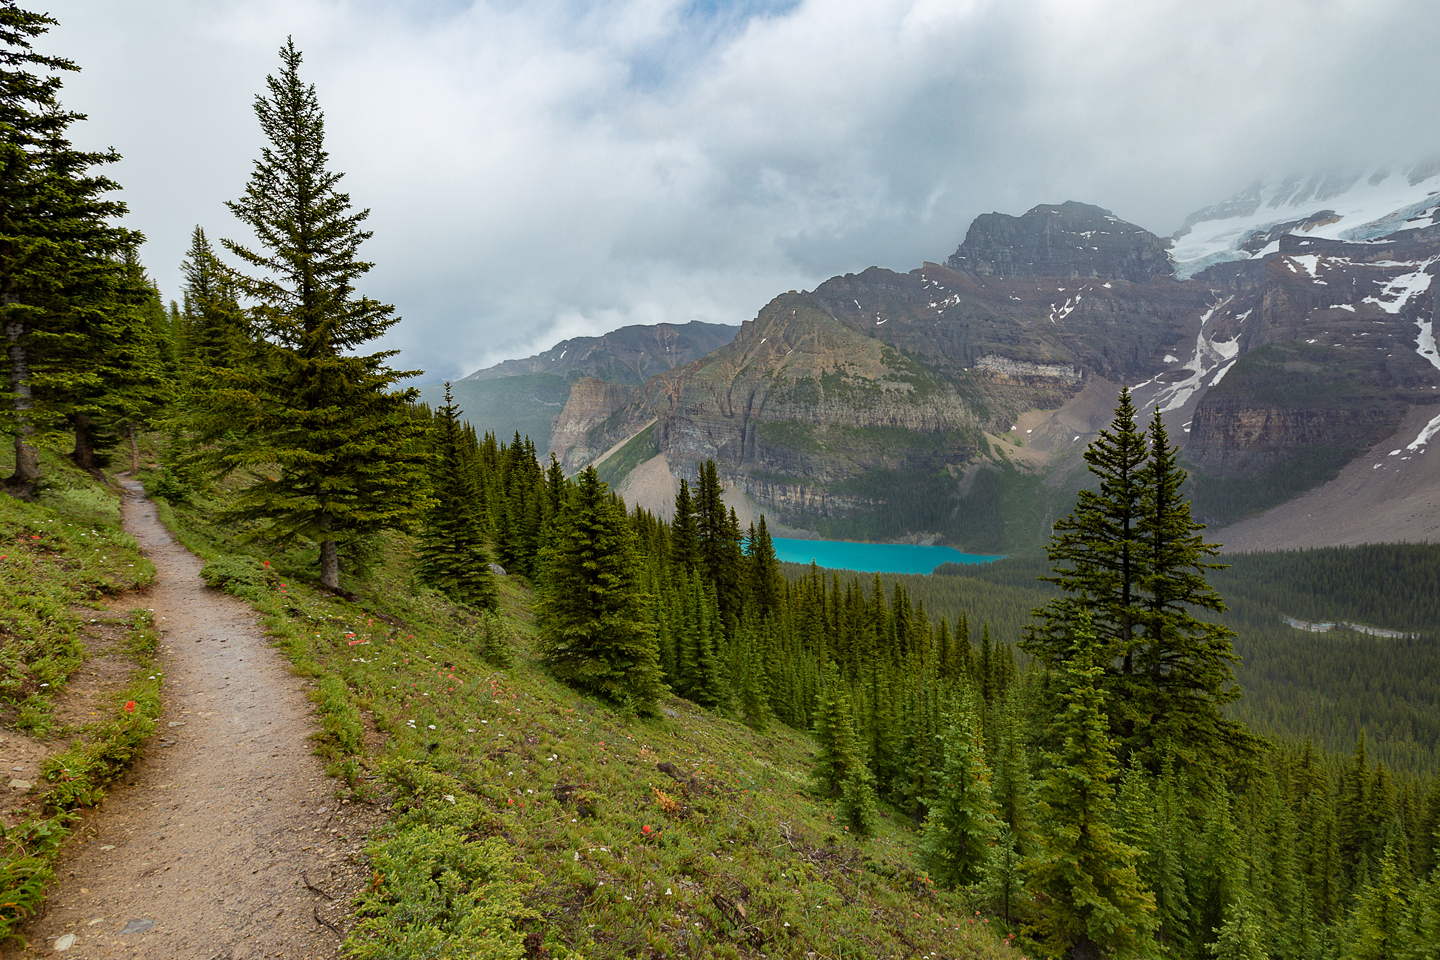 Hiking The Valley of Ten Peaks: Eiffel Lake Trail